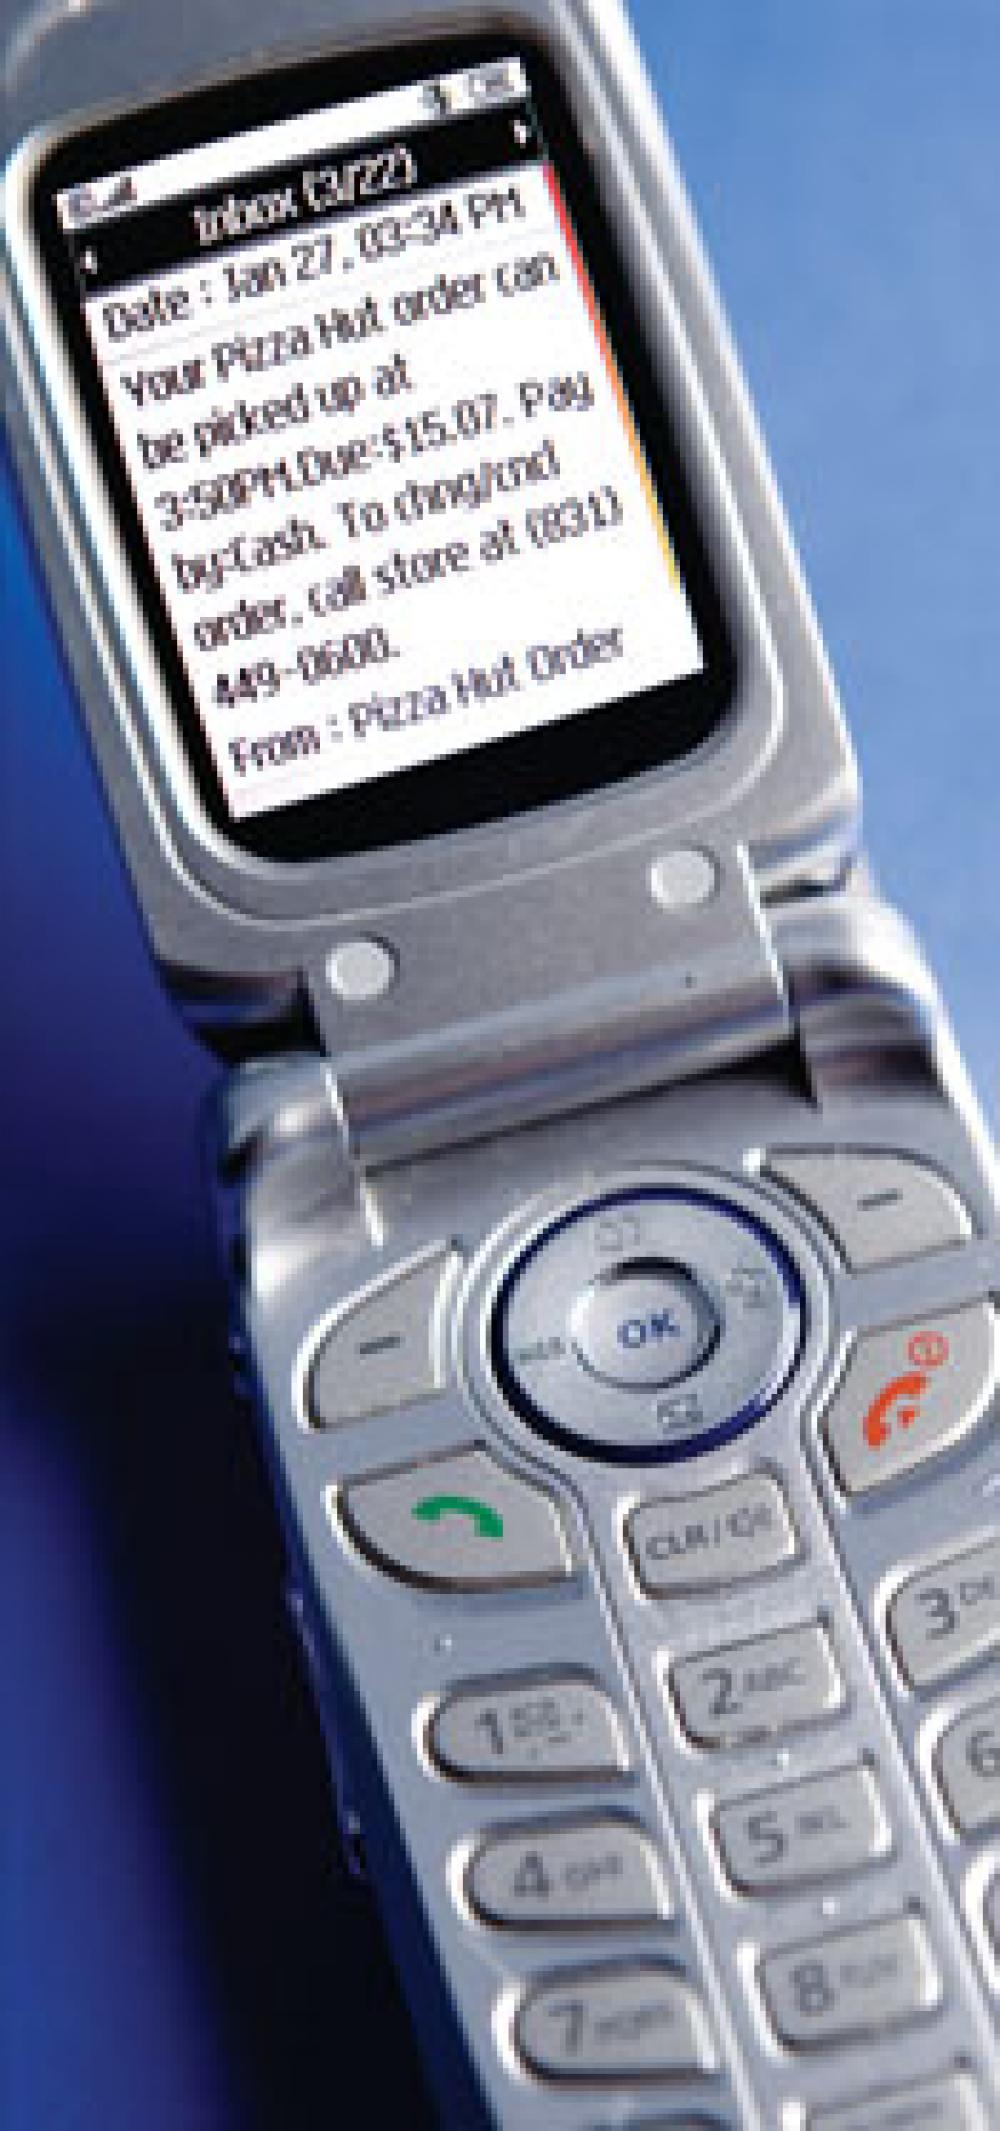 Technology lets chains give consumers more order channels